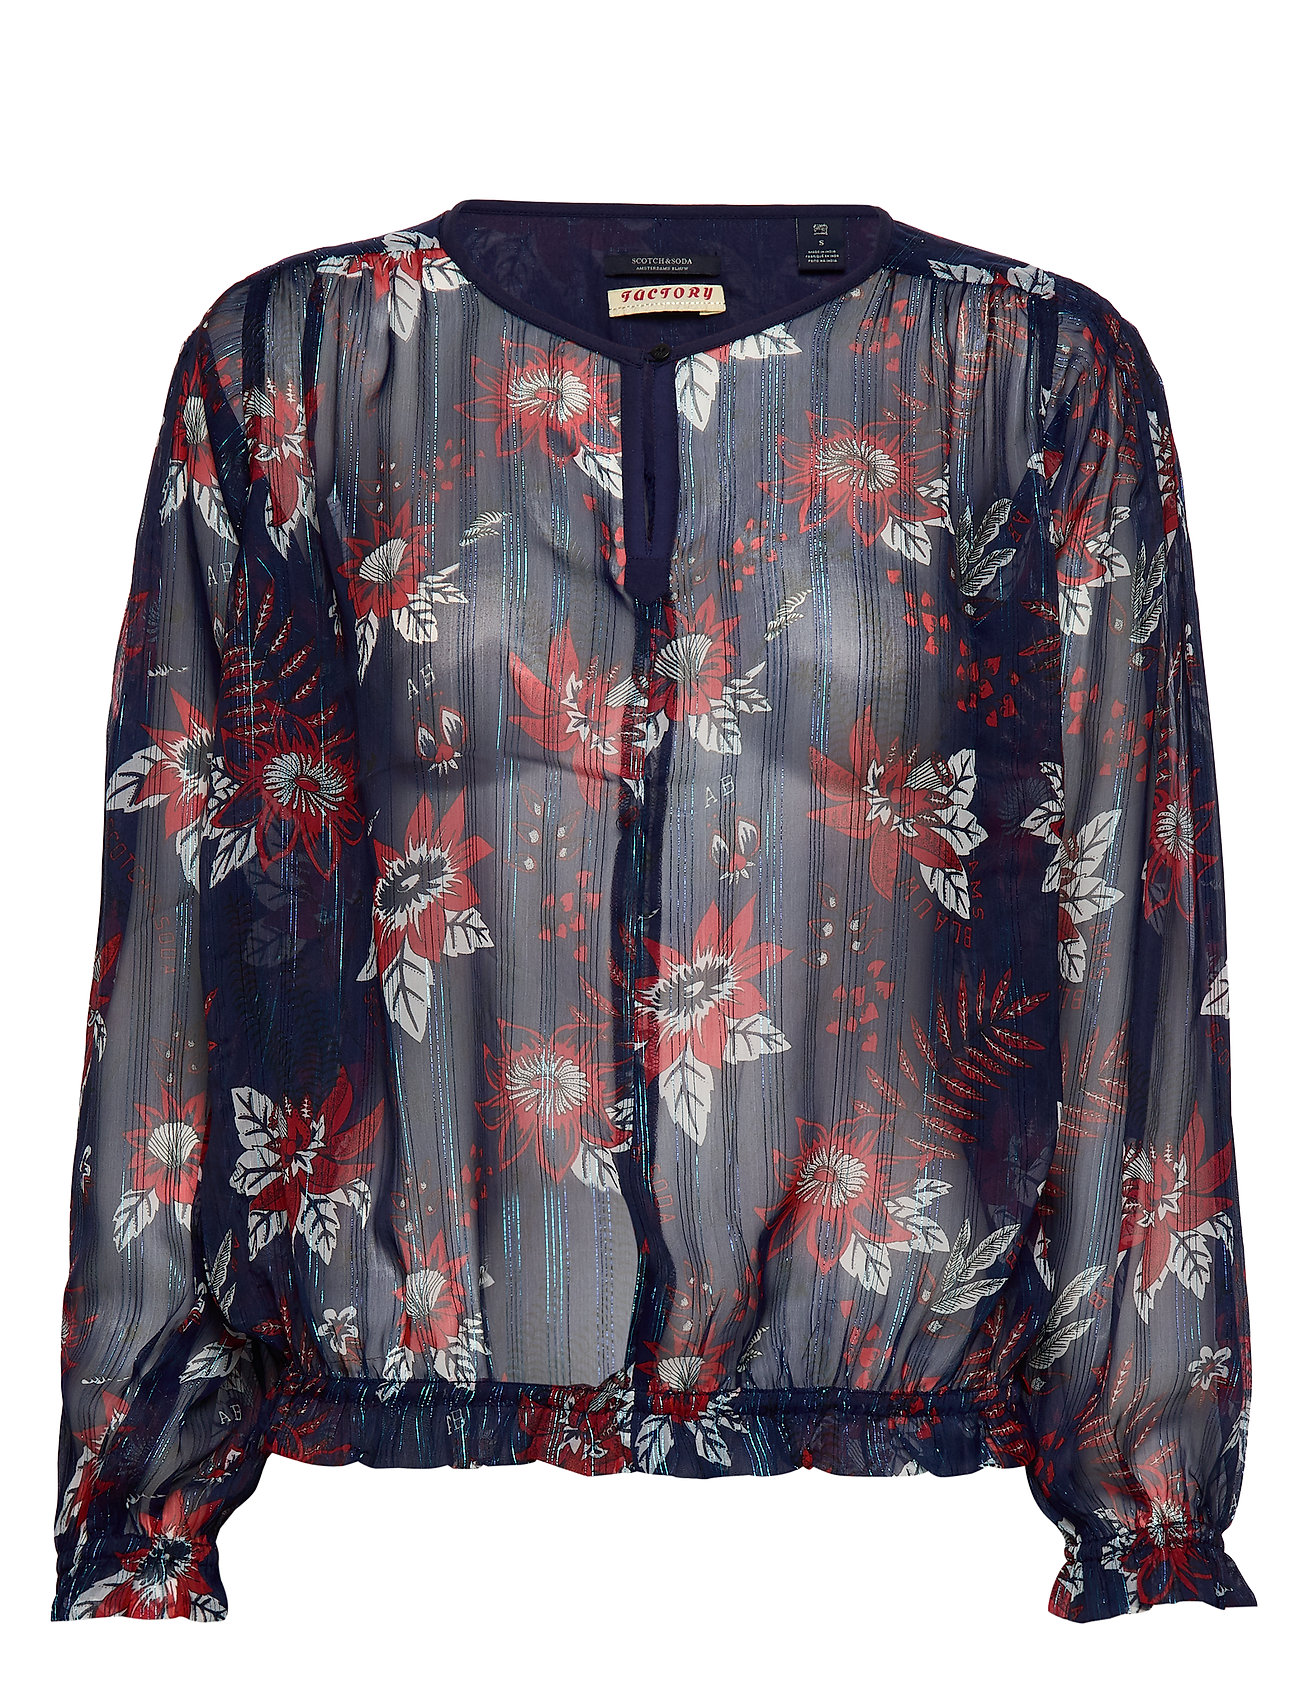 Scotch & Soda Drapey top in floral prints with elastic detailing - COMBO B